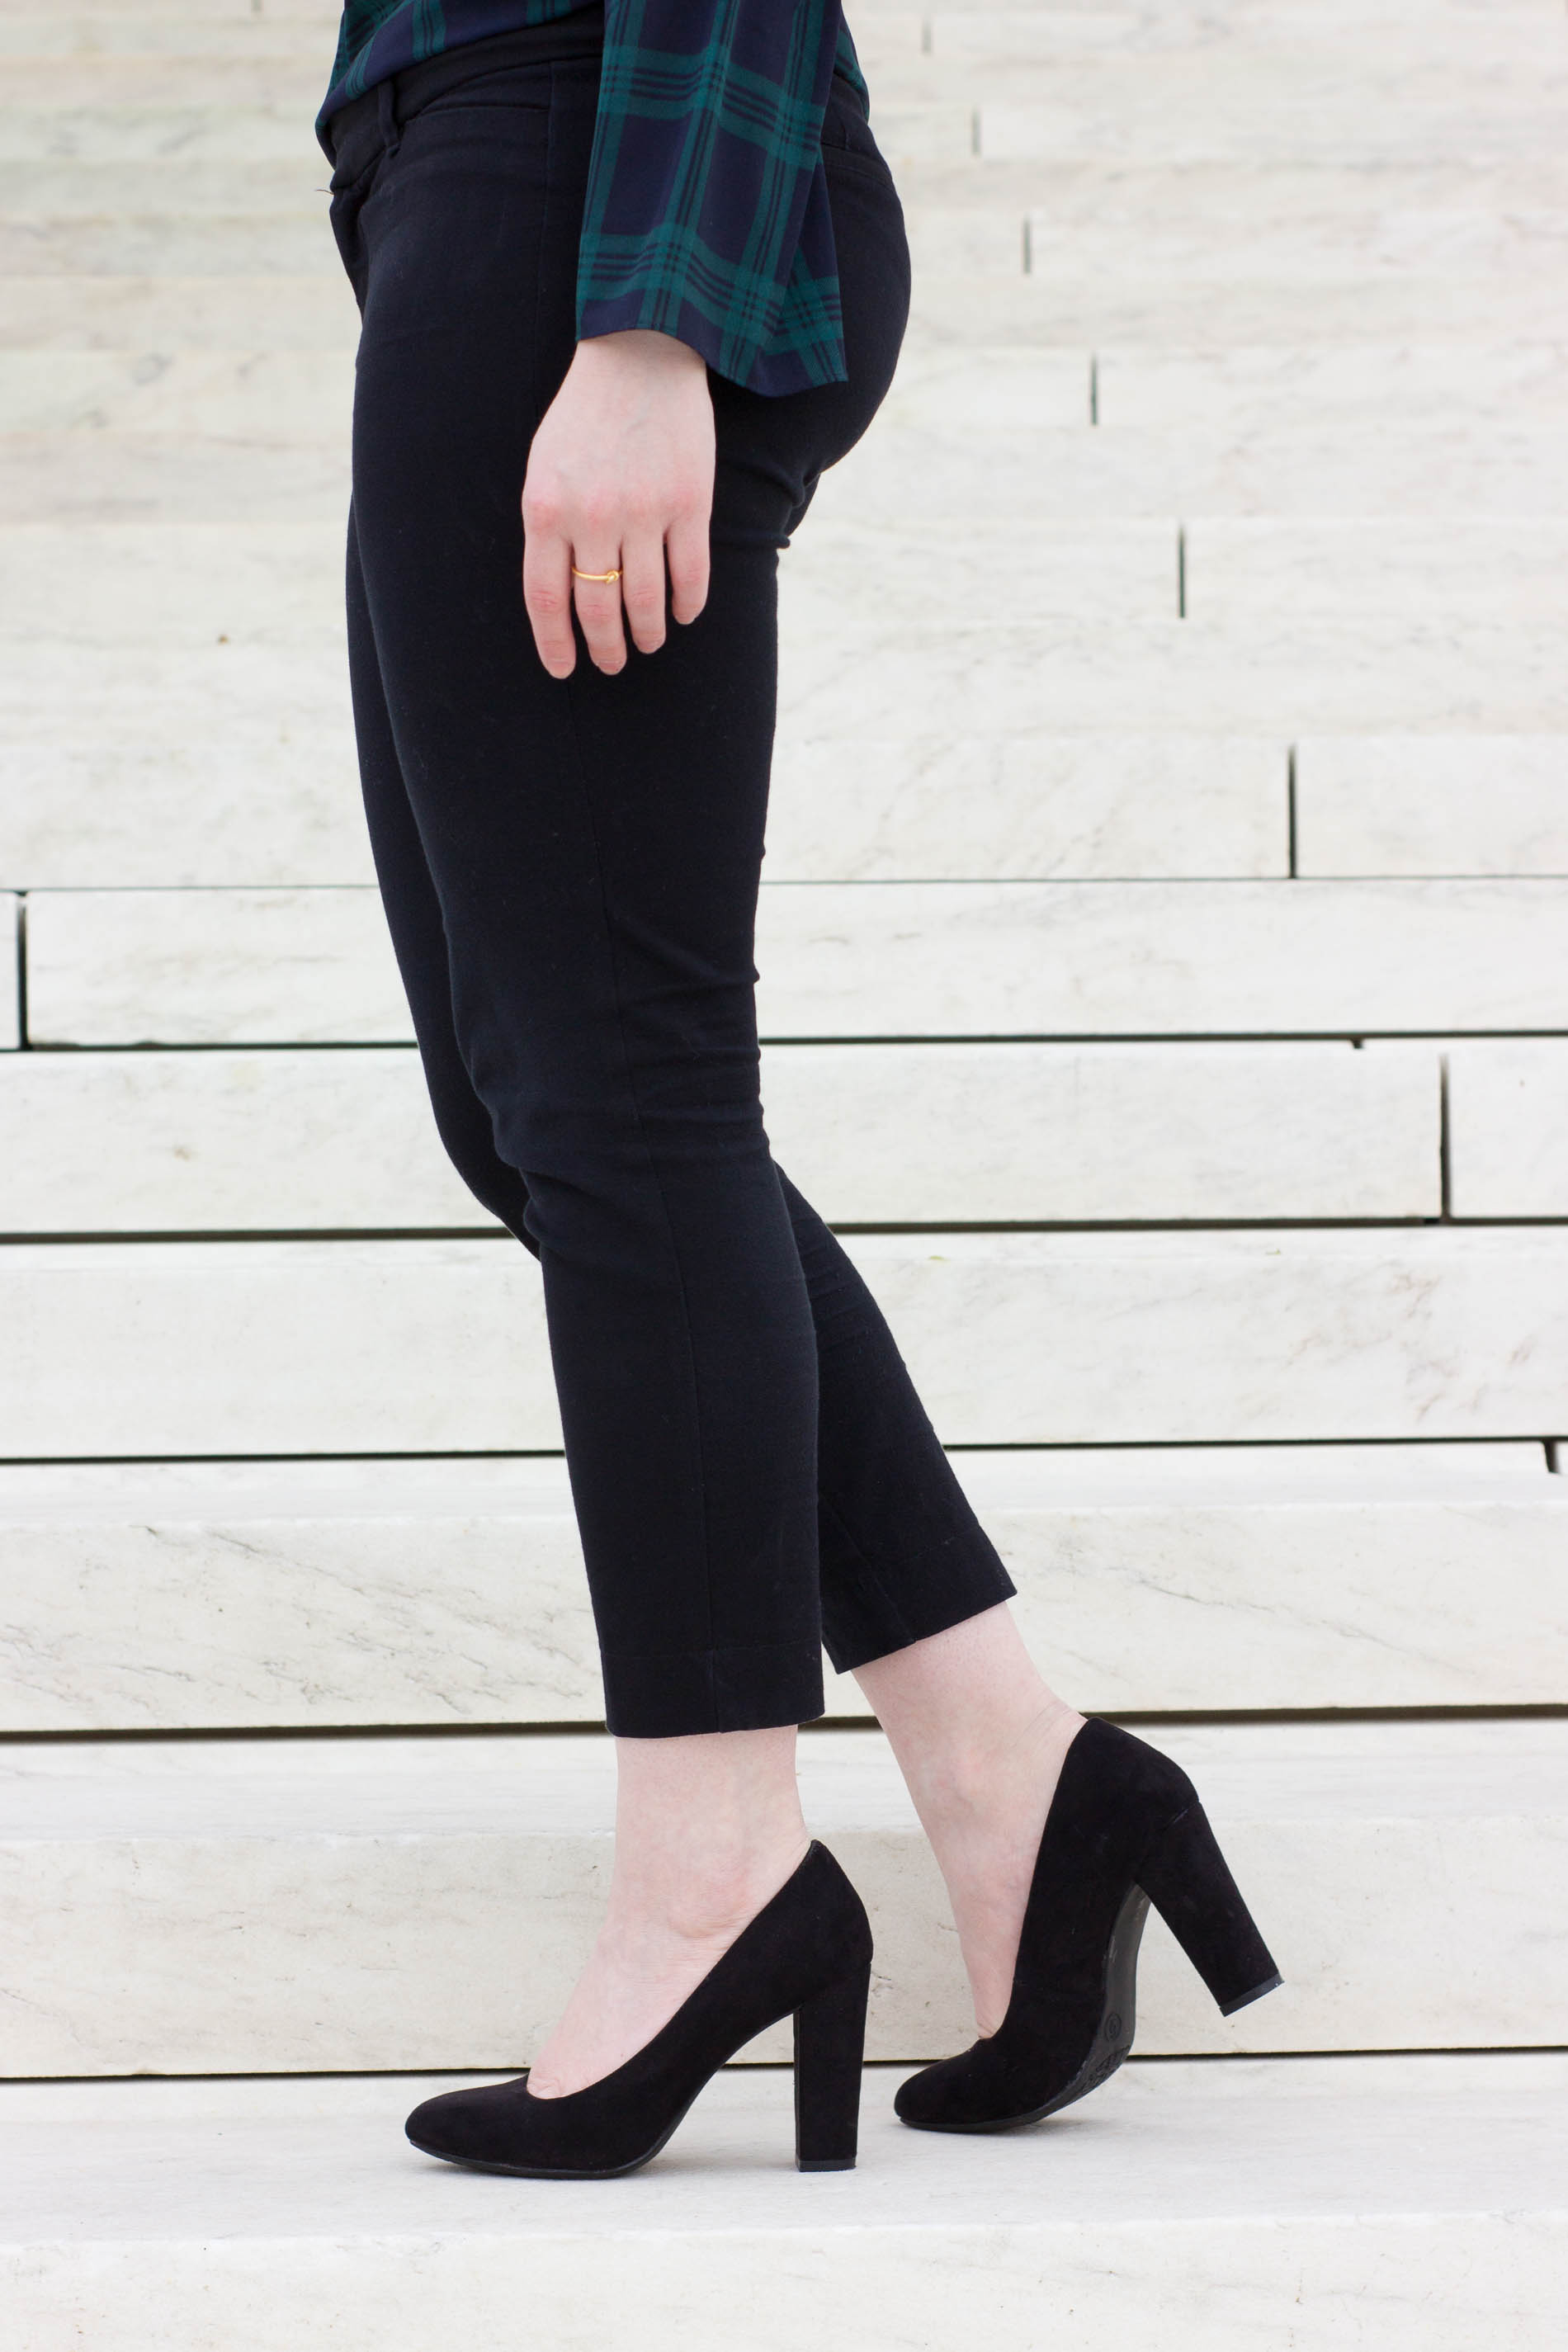 The Office Holiday Party   Something Good, @danaerinw, black pumps